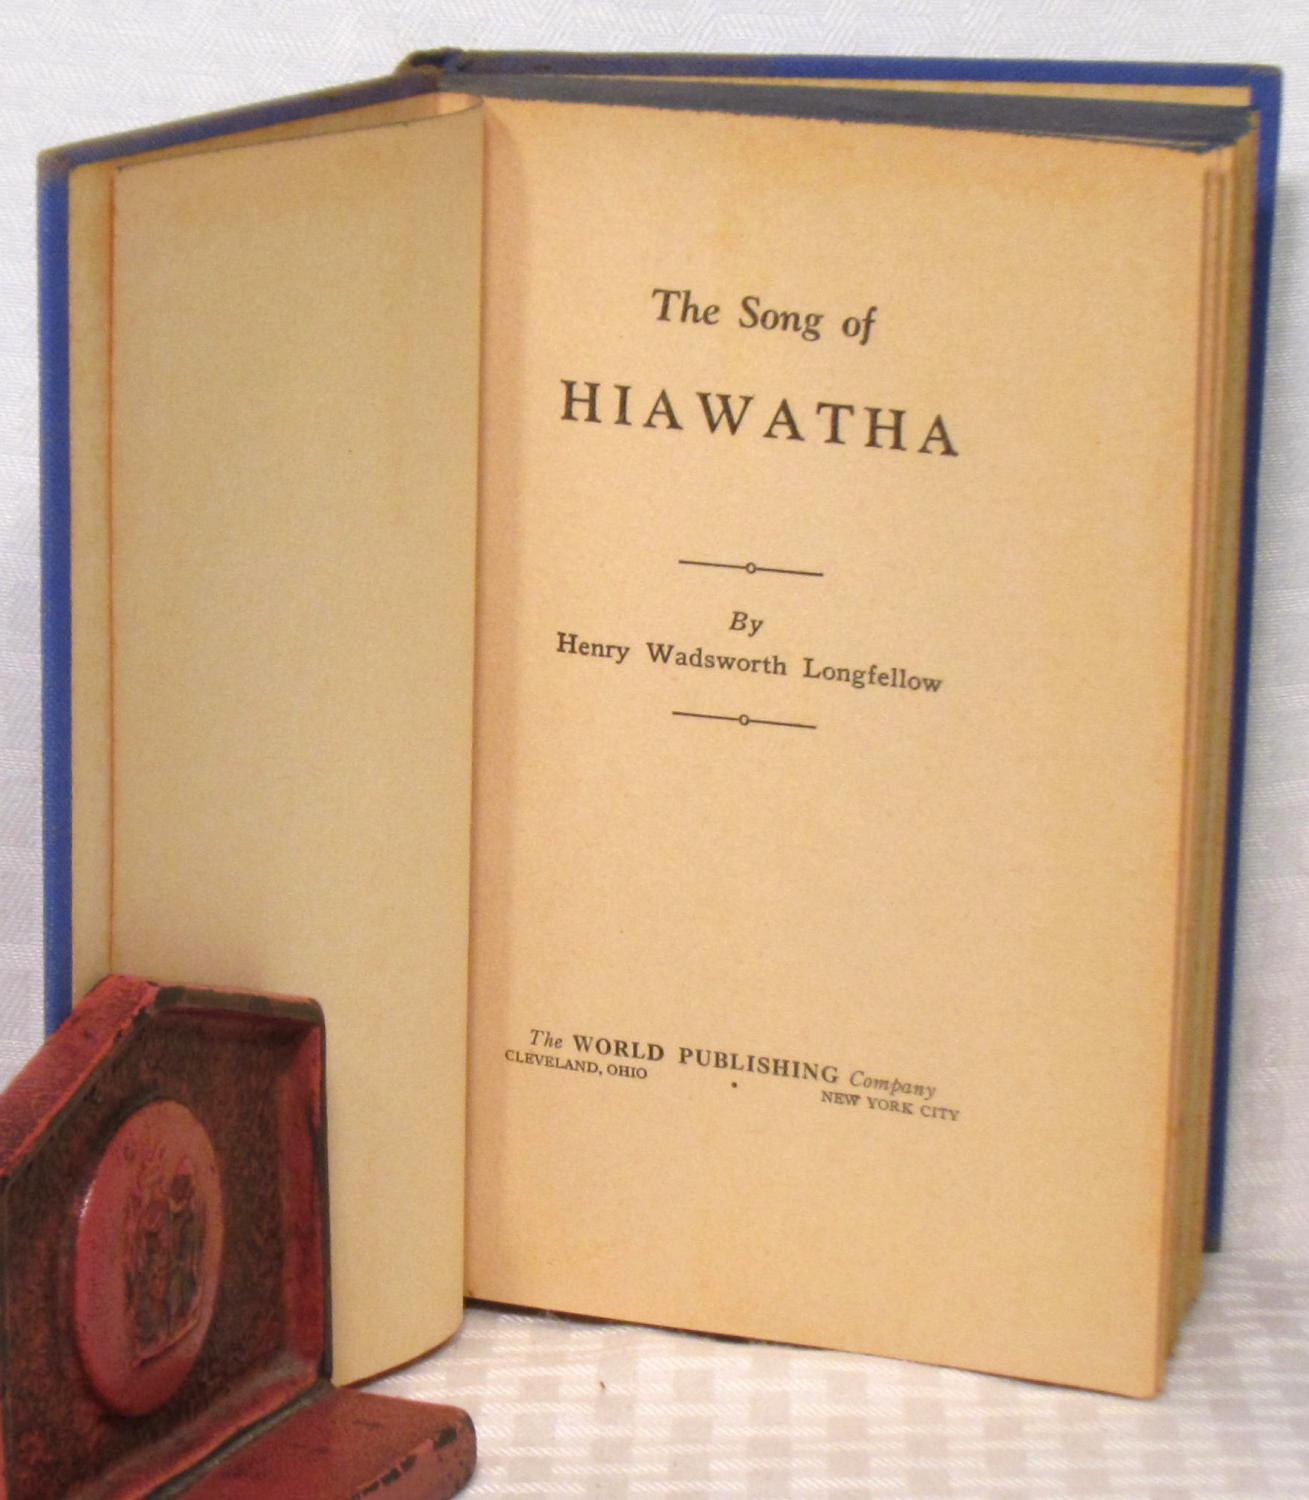 the song of hiawatha by henry wadsworth longfellow the world the song of hiawatha henry wadsworth longfellow